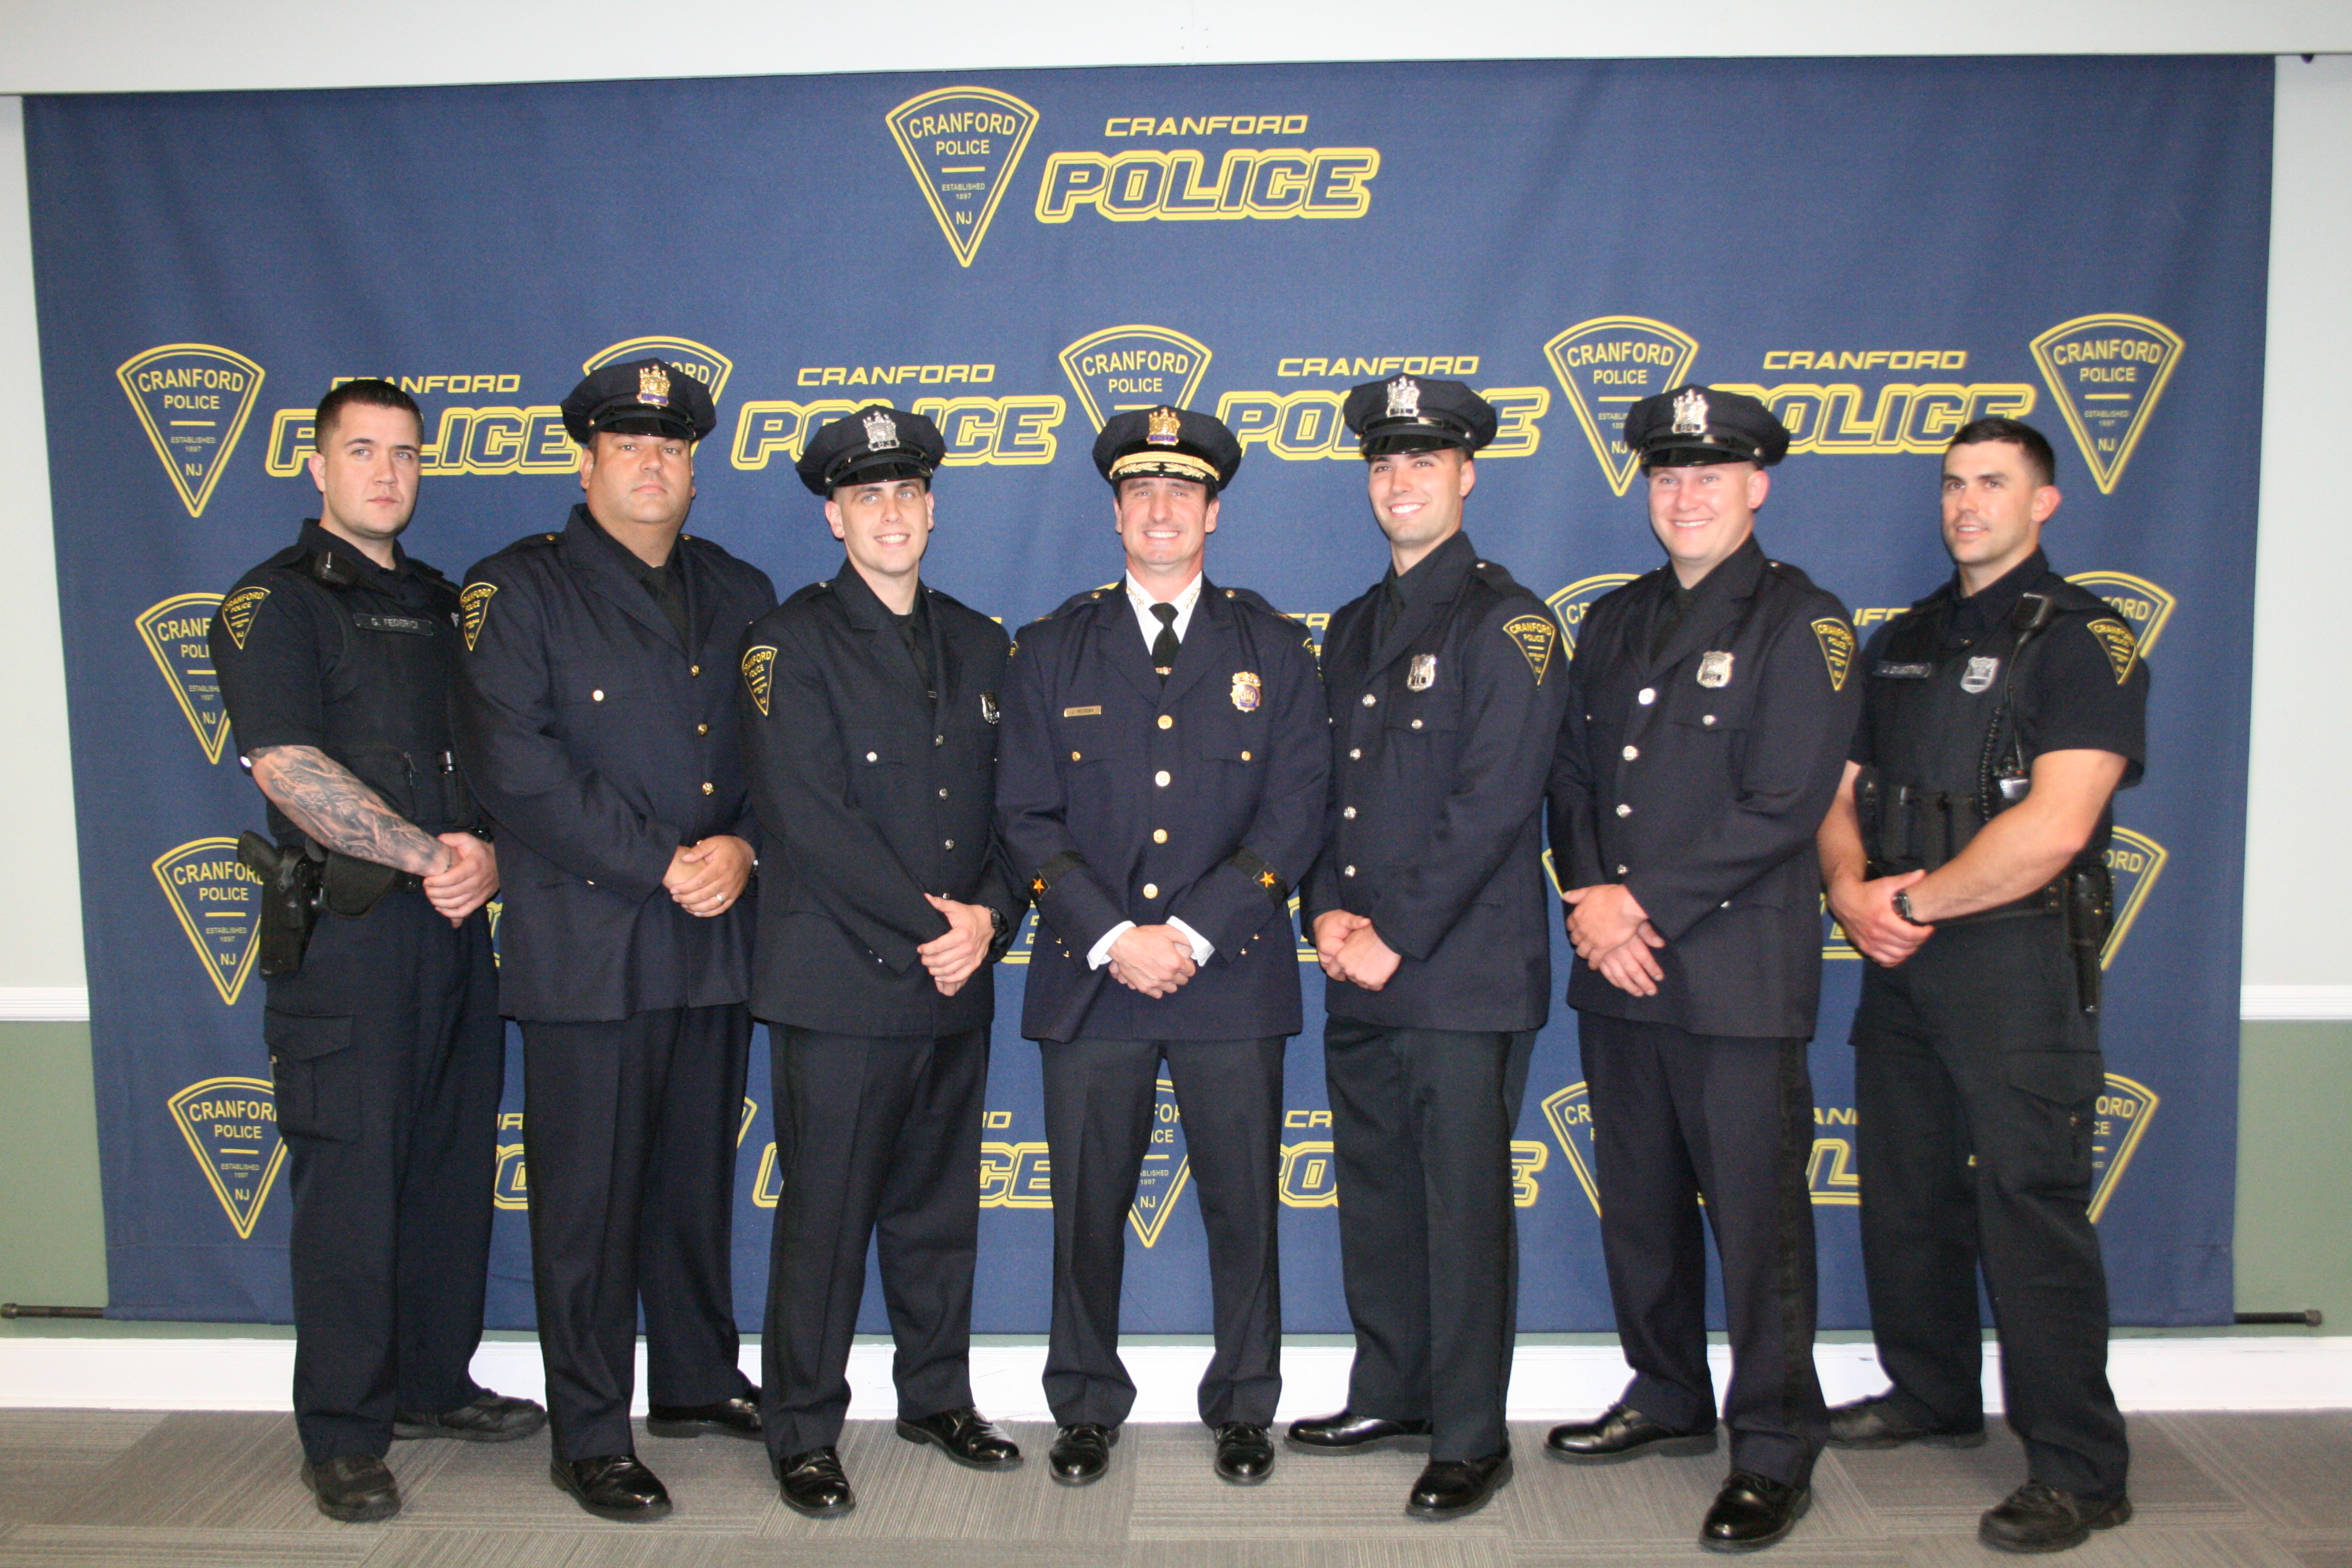 cranford police department recognizes outstanding officers